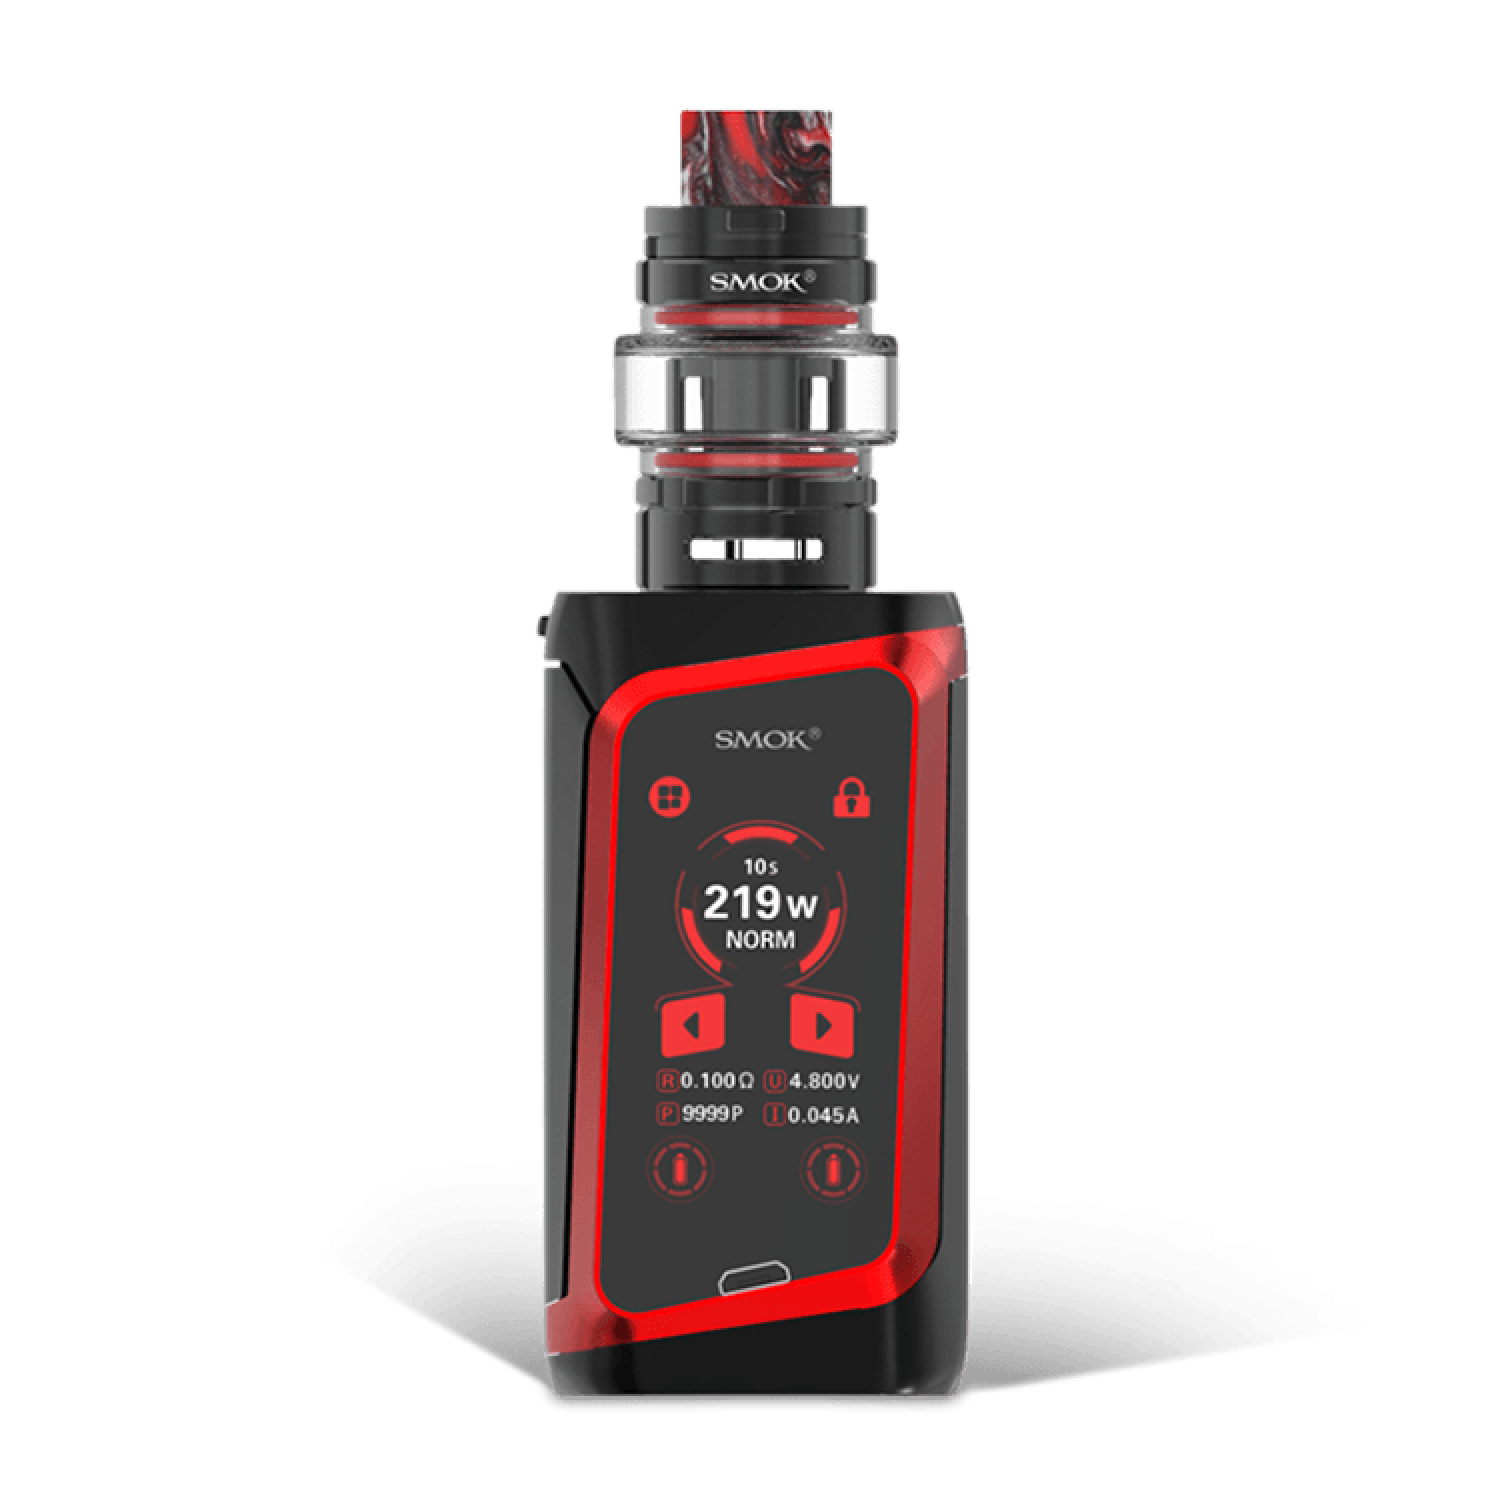 smok morph 219 kit black red 1